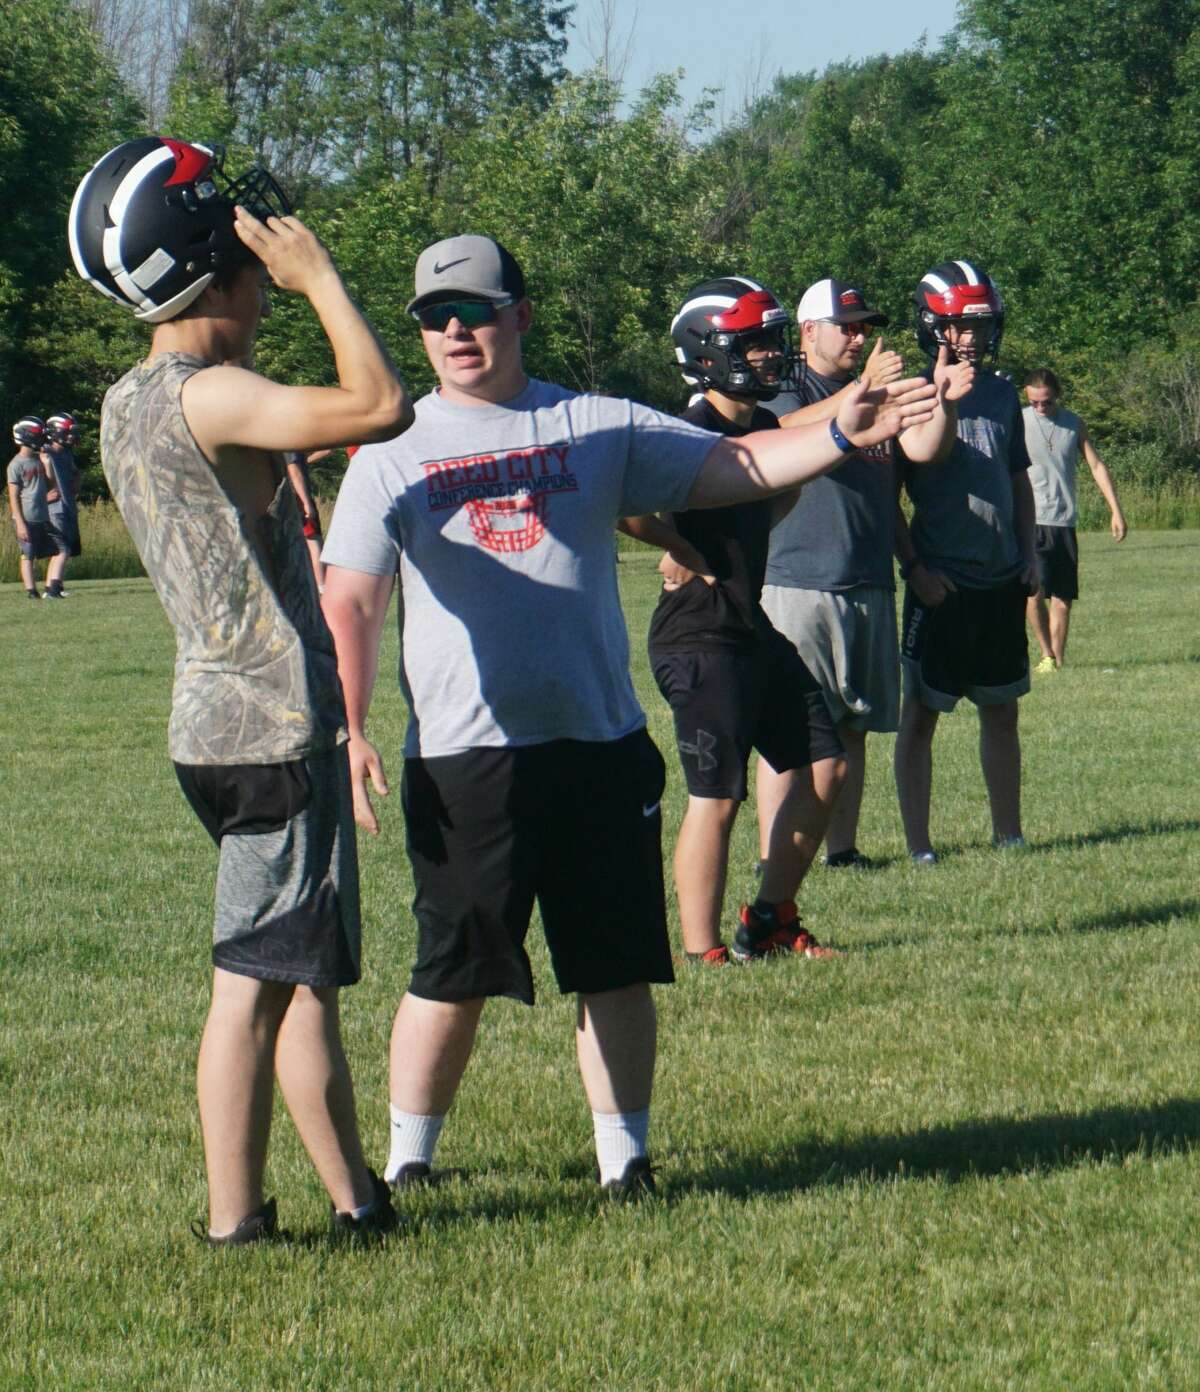 The Reed City football team continued its early preseason workouts with the second day of minicamp on Wednesday night.